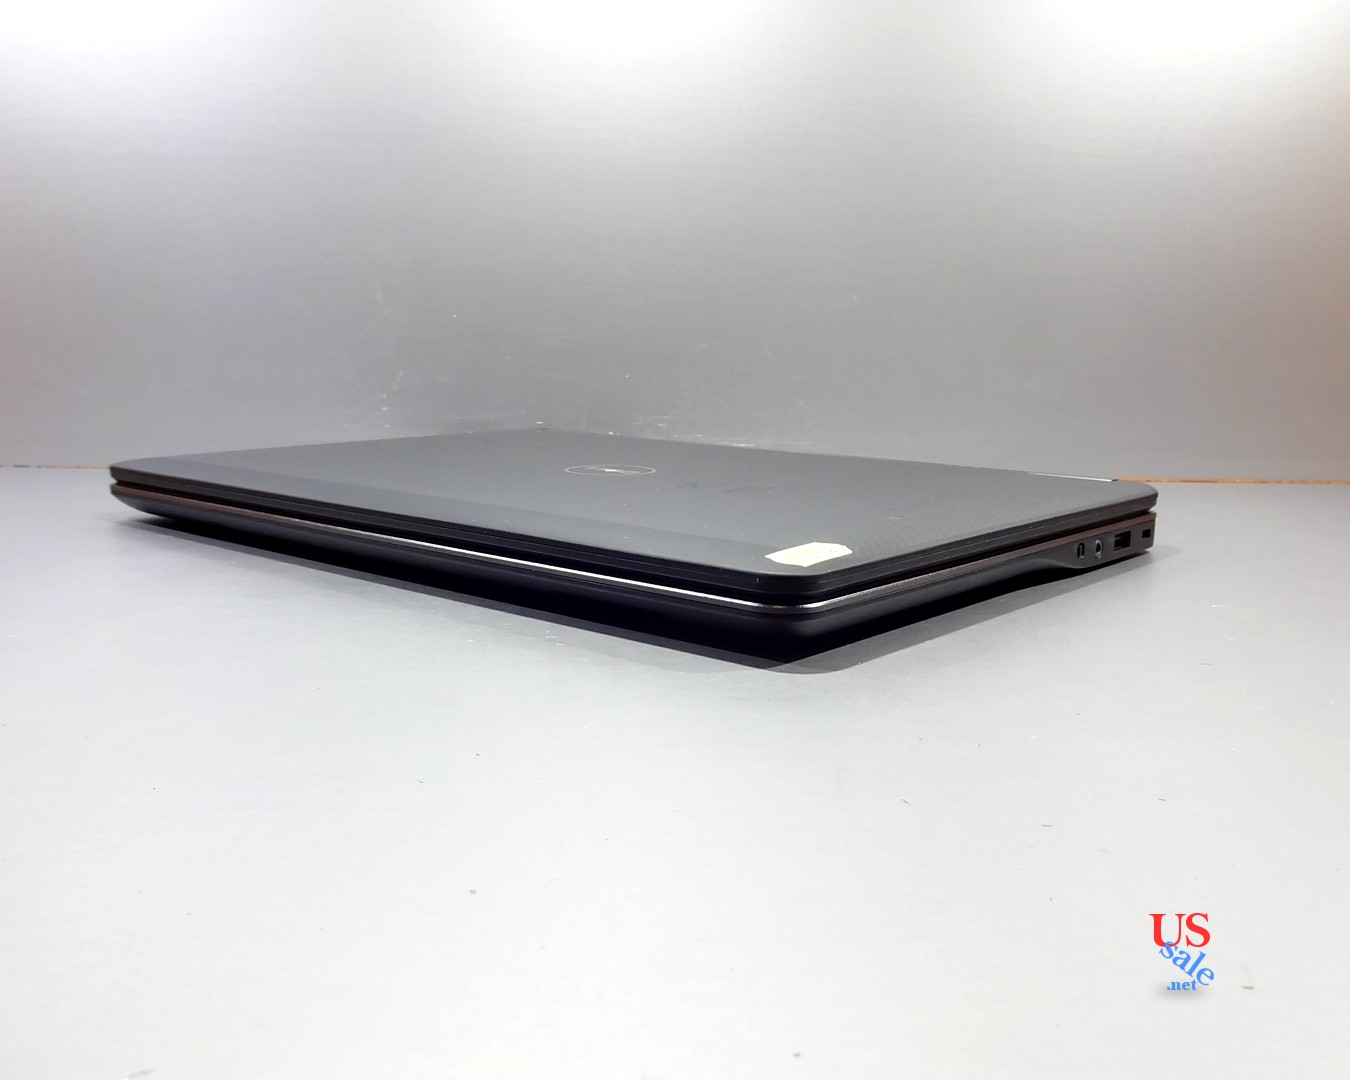 Toshiba-Satellite-C55-B5200-1300-real-4.jpg